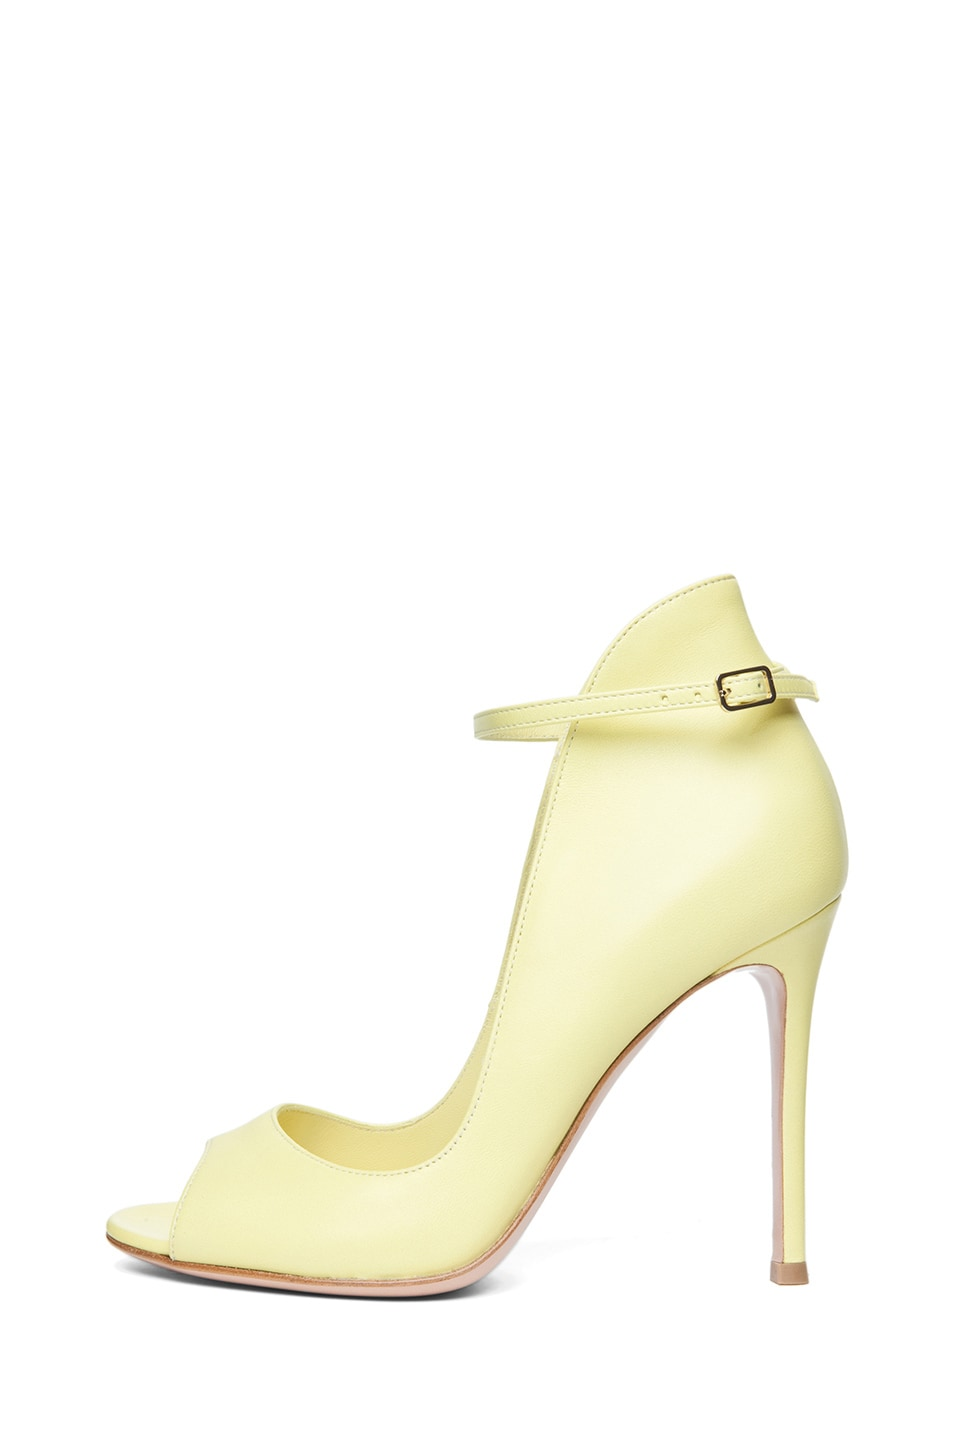 Image 1 of Gianvito Rossi Nappy Leather Open Toe Heel in Lemon